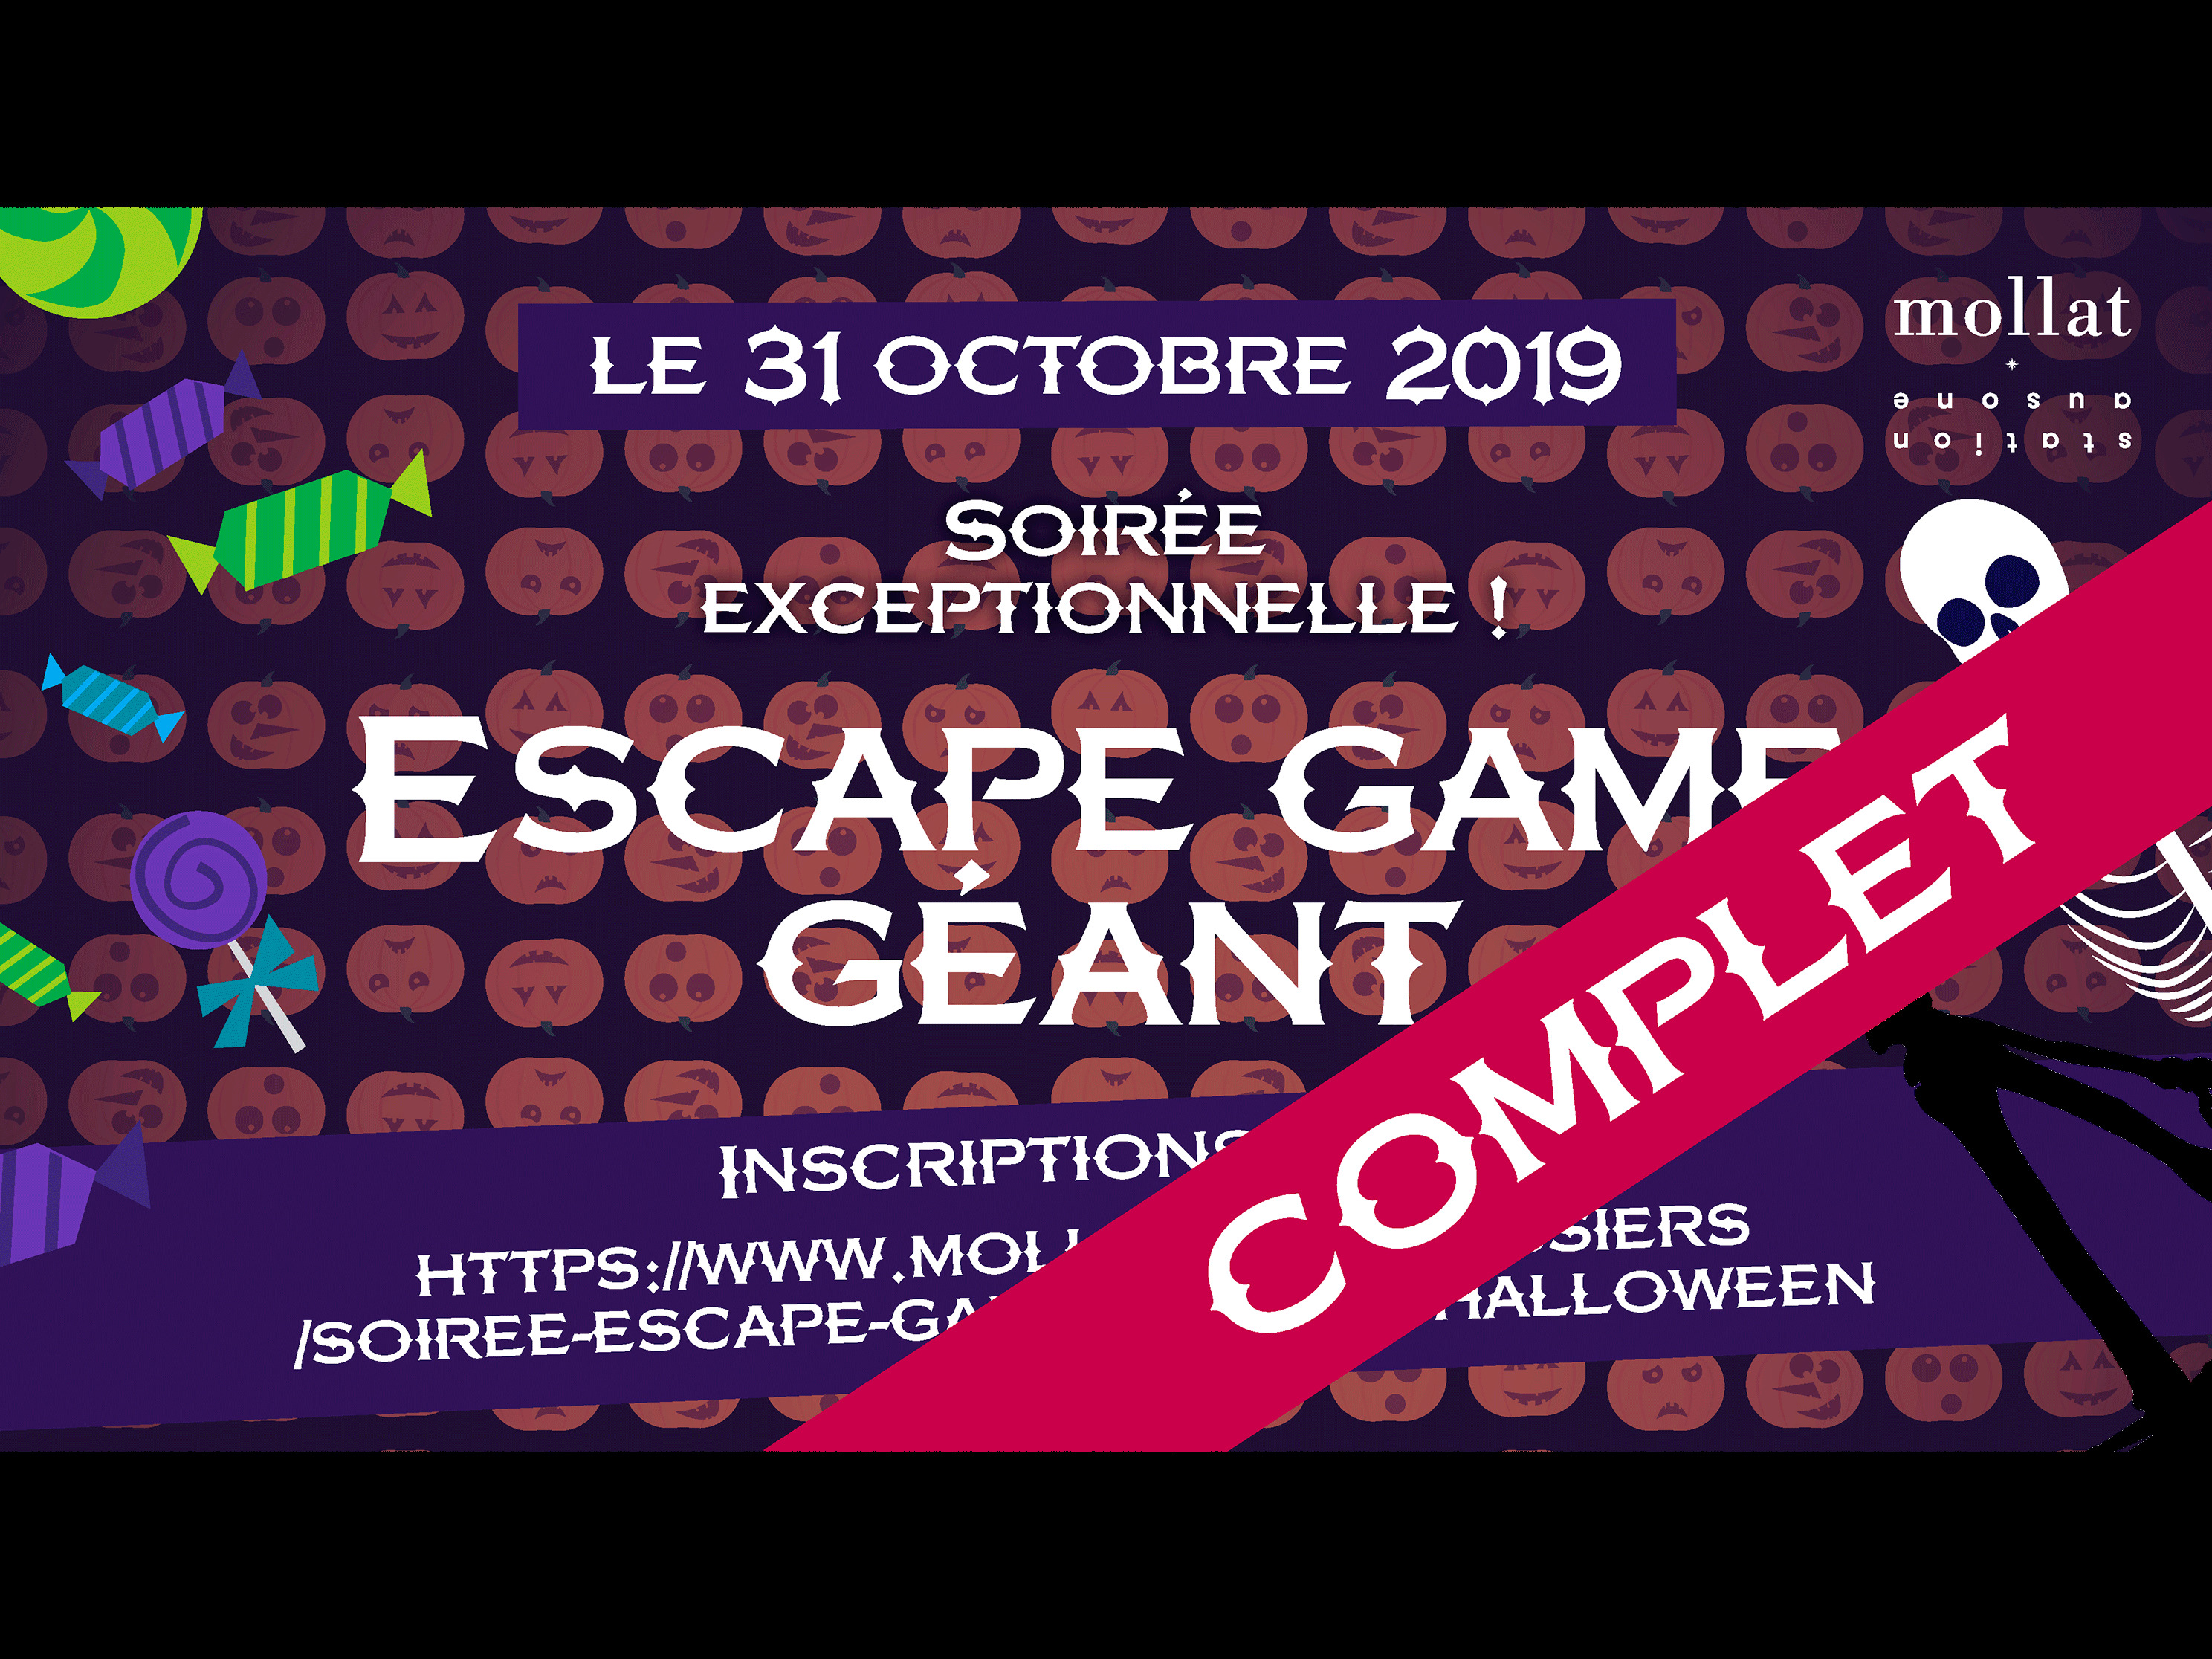 escape-game-2019-complet.png 2